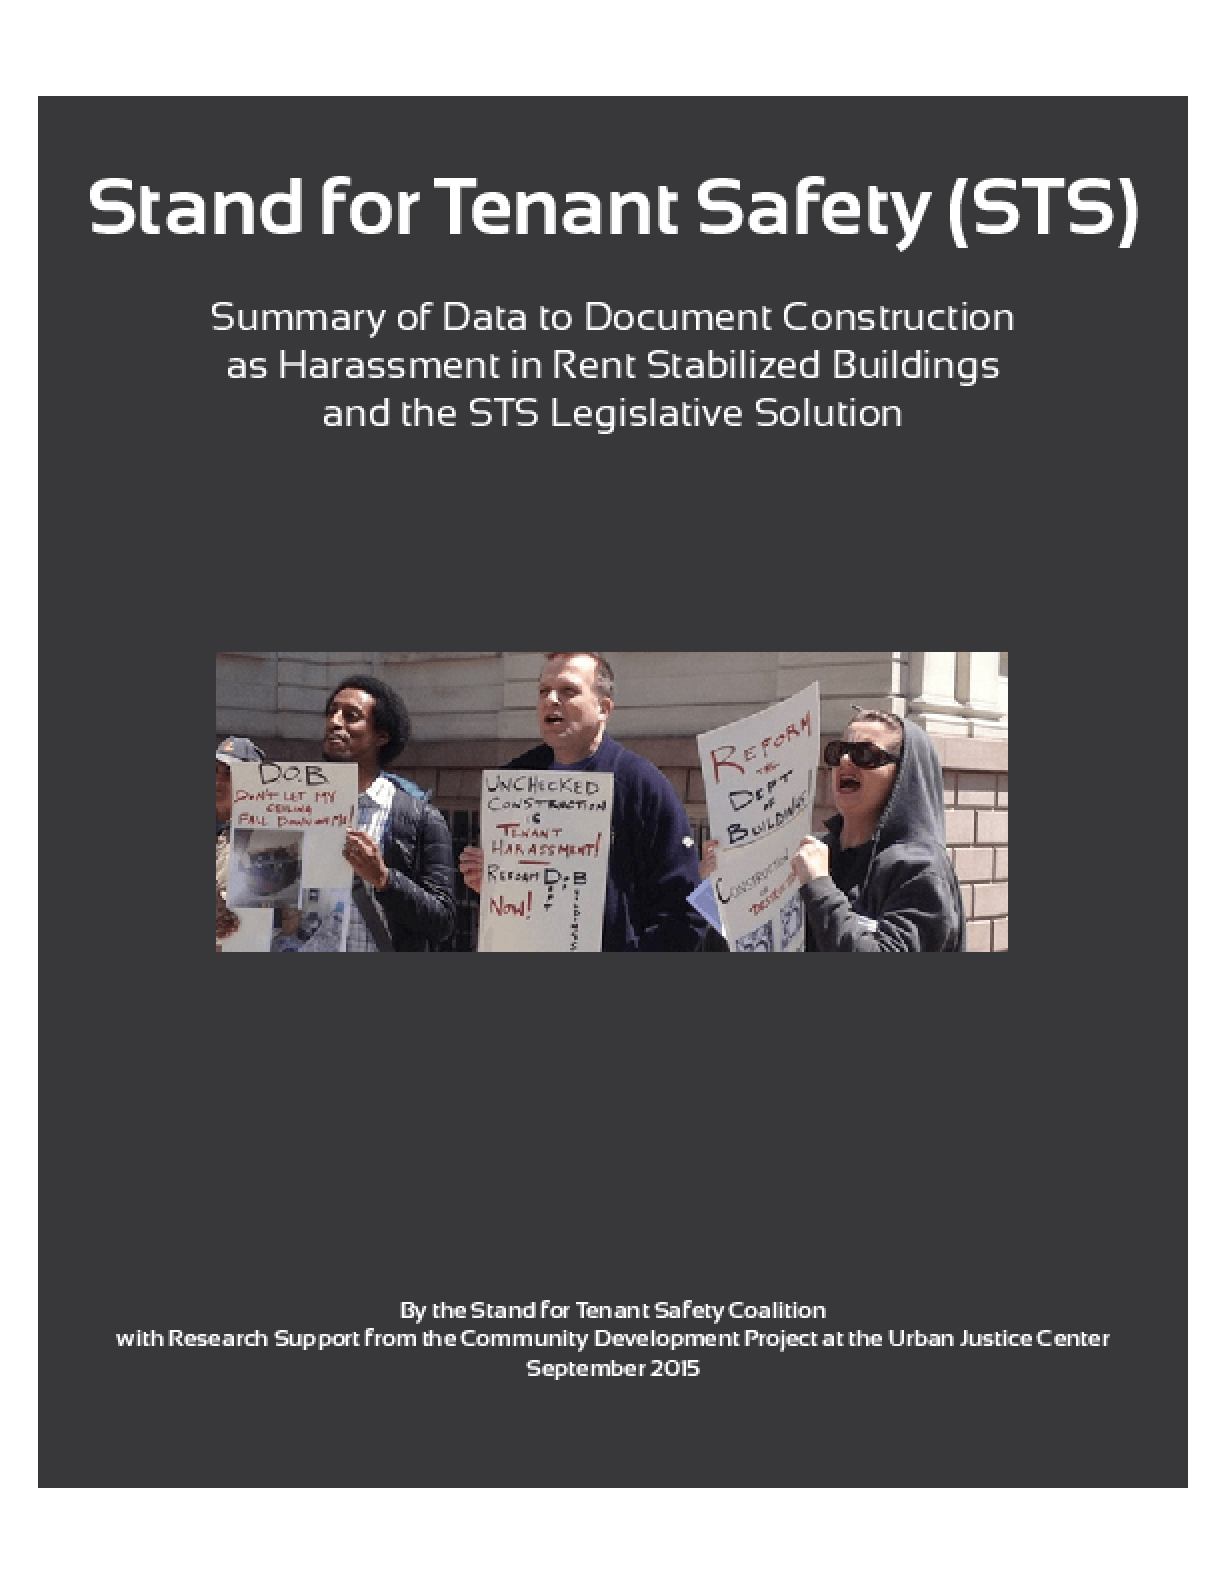 Stand For Tenant Safety: Summary of Data to Document Construction as Harassment in Rent Stabilized Buildings and the STS Legislative Solution